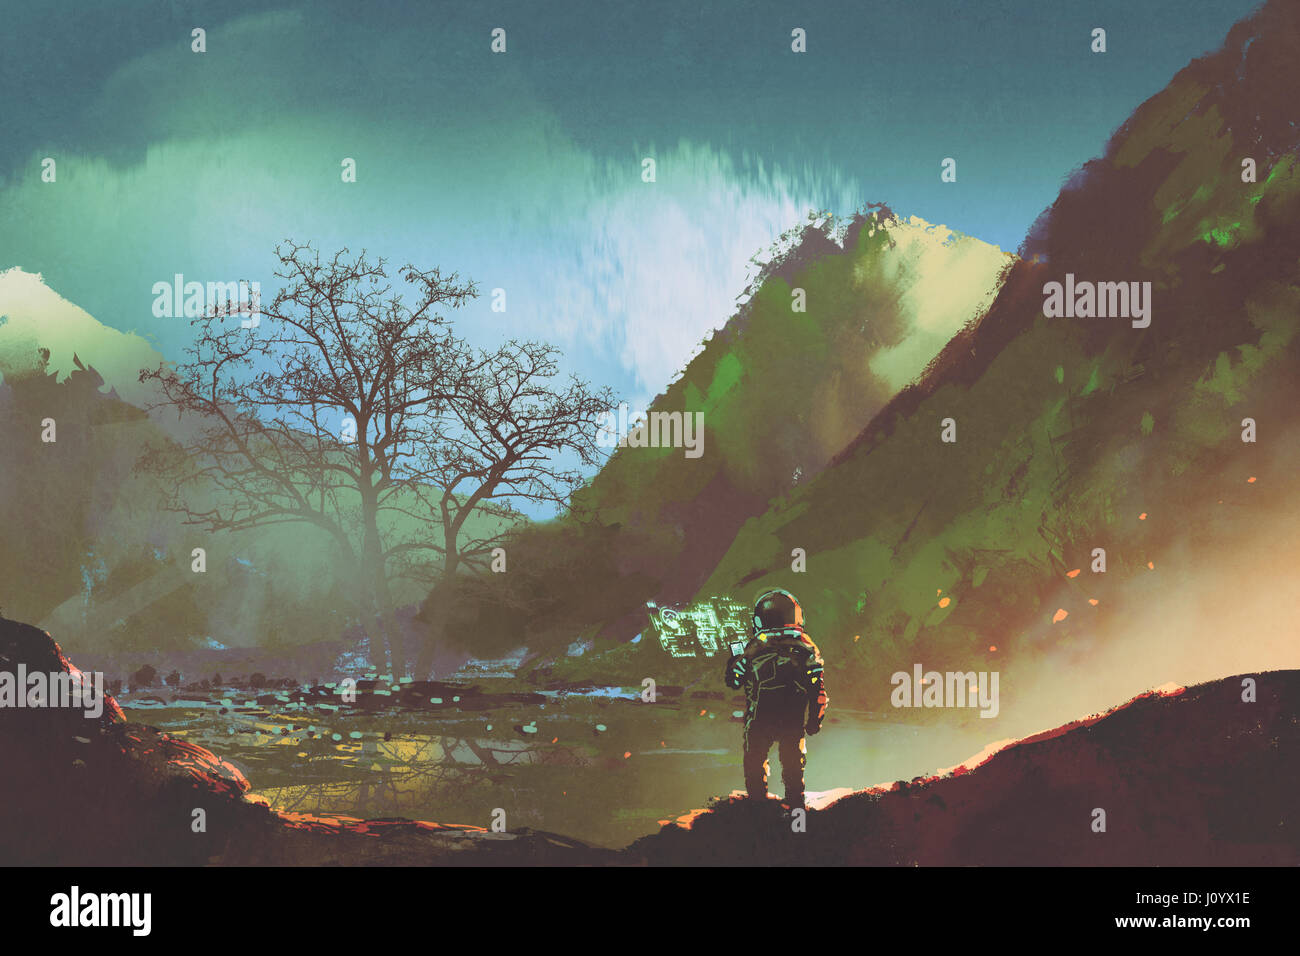 sci-fi concept of the astronaut exploring living things on the planet, illustration painting - Stock Image